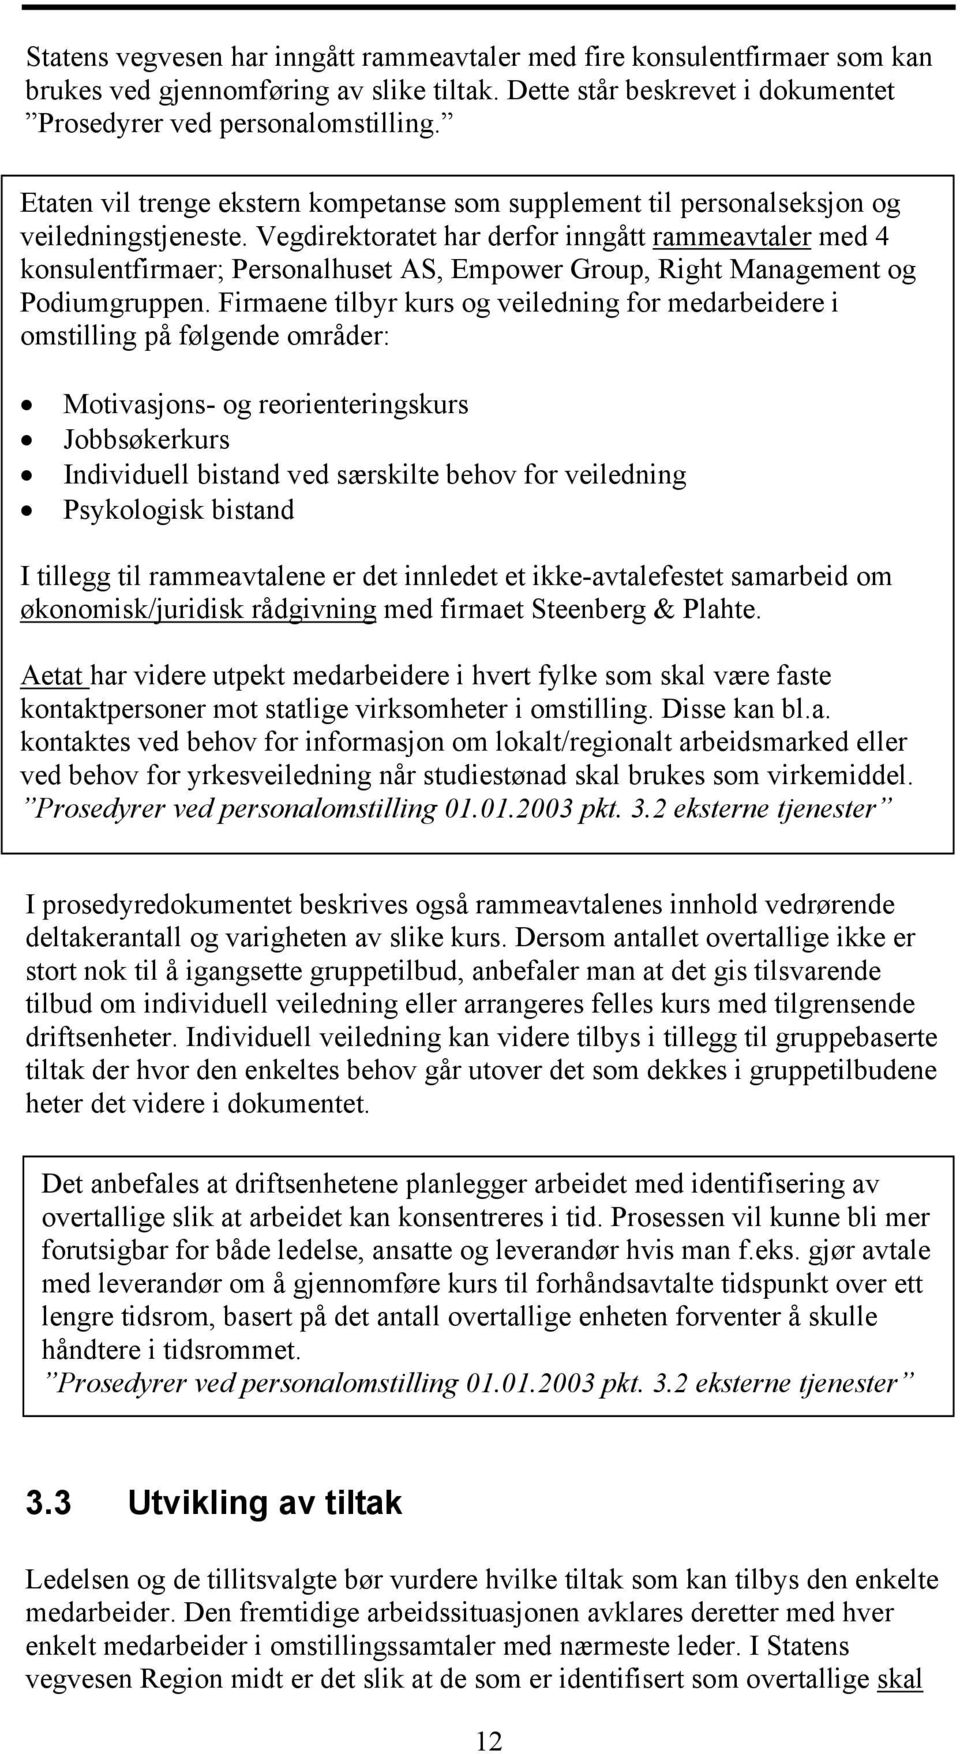 Vegdirektoratet har derfor inngått rammeavtaler med 4 konsulentfirmaer; Personalhuset AS, Empower Group, Right Management og Podiumgruppen.